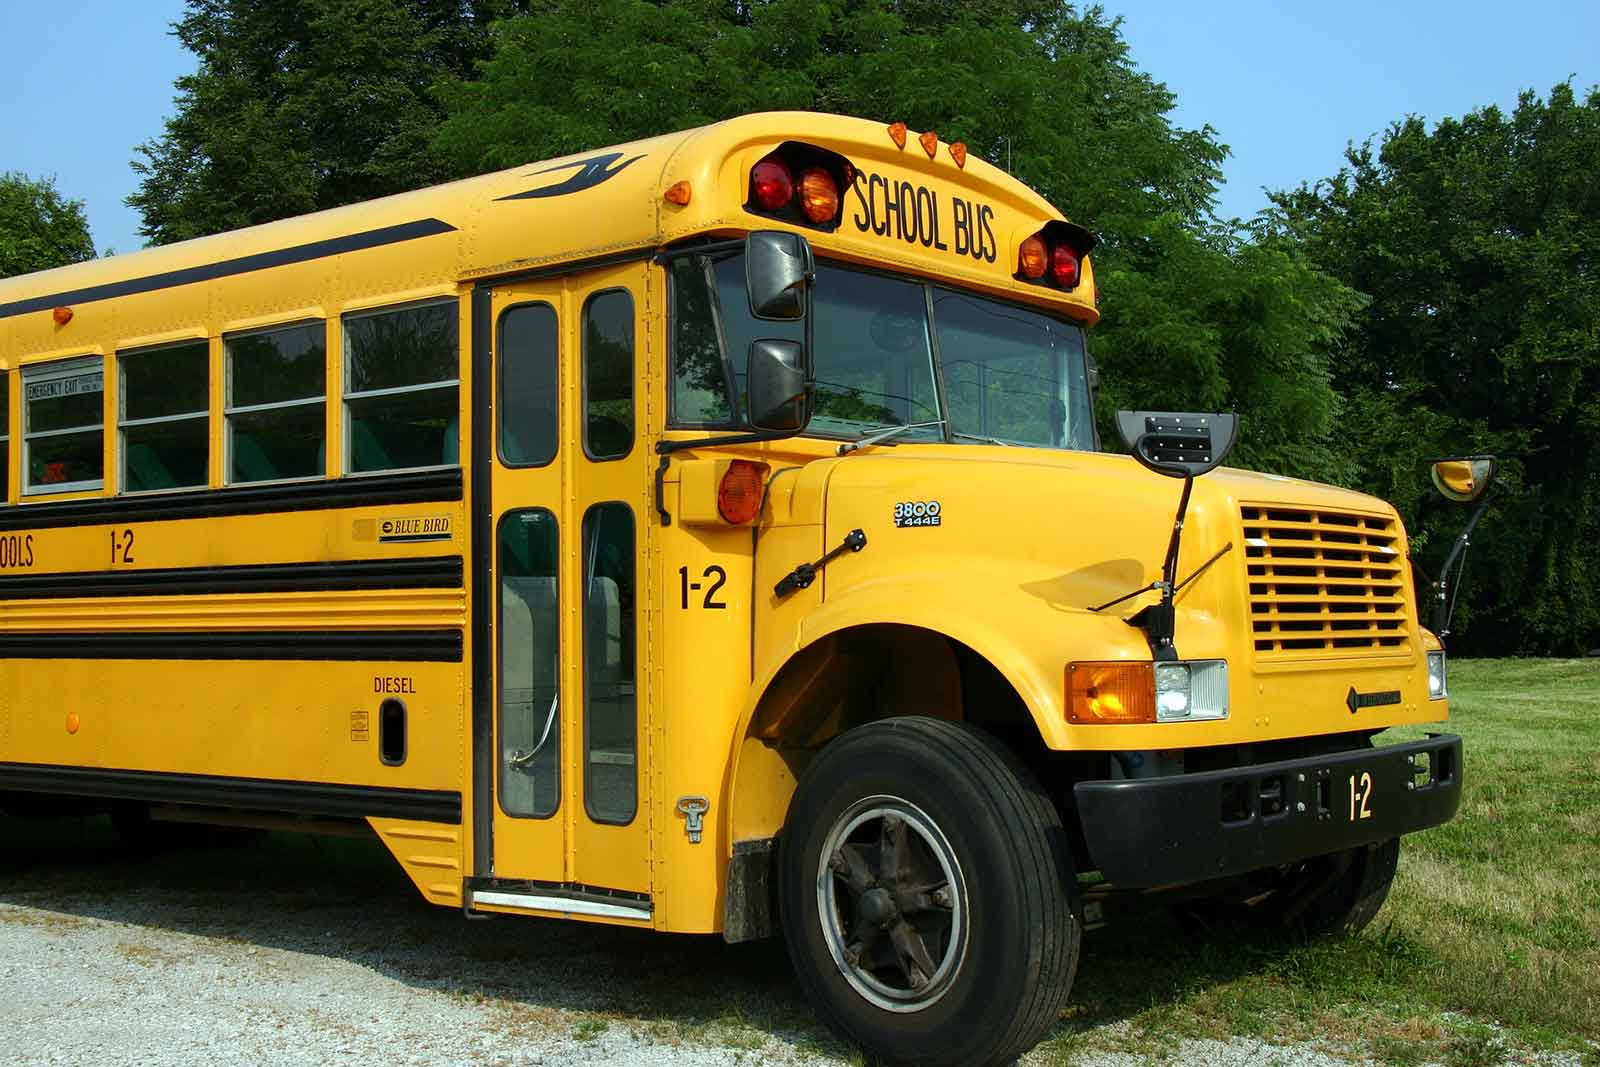 school bus gps tracking